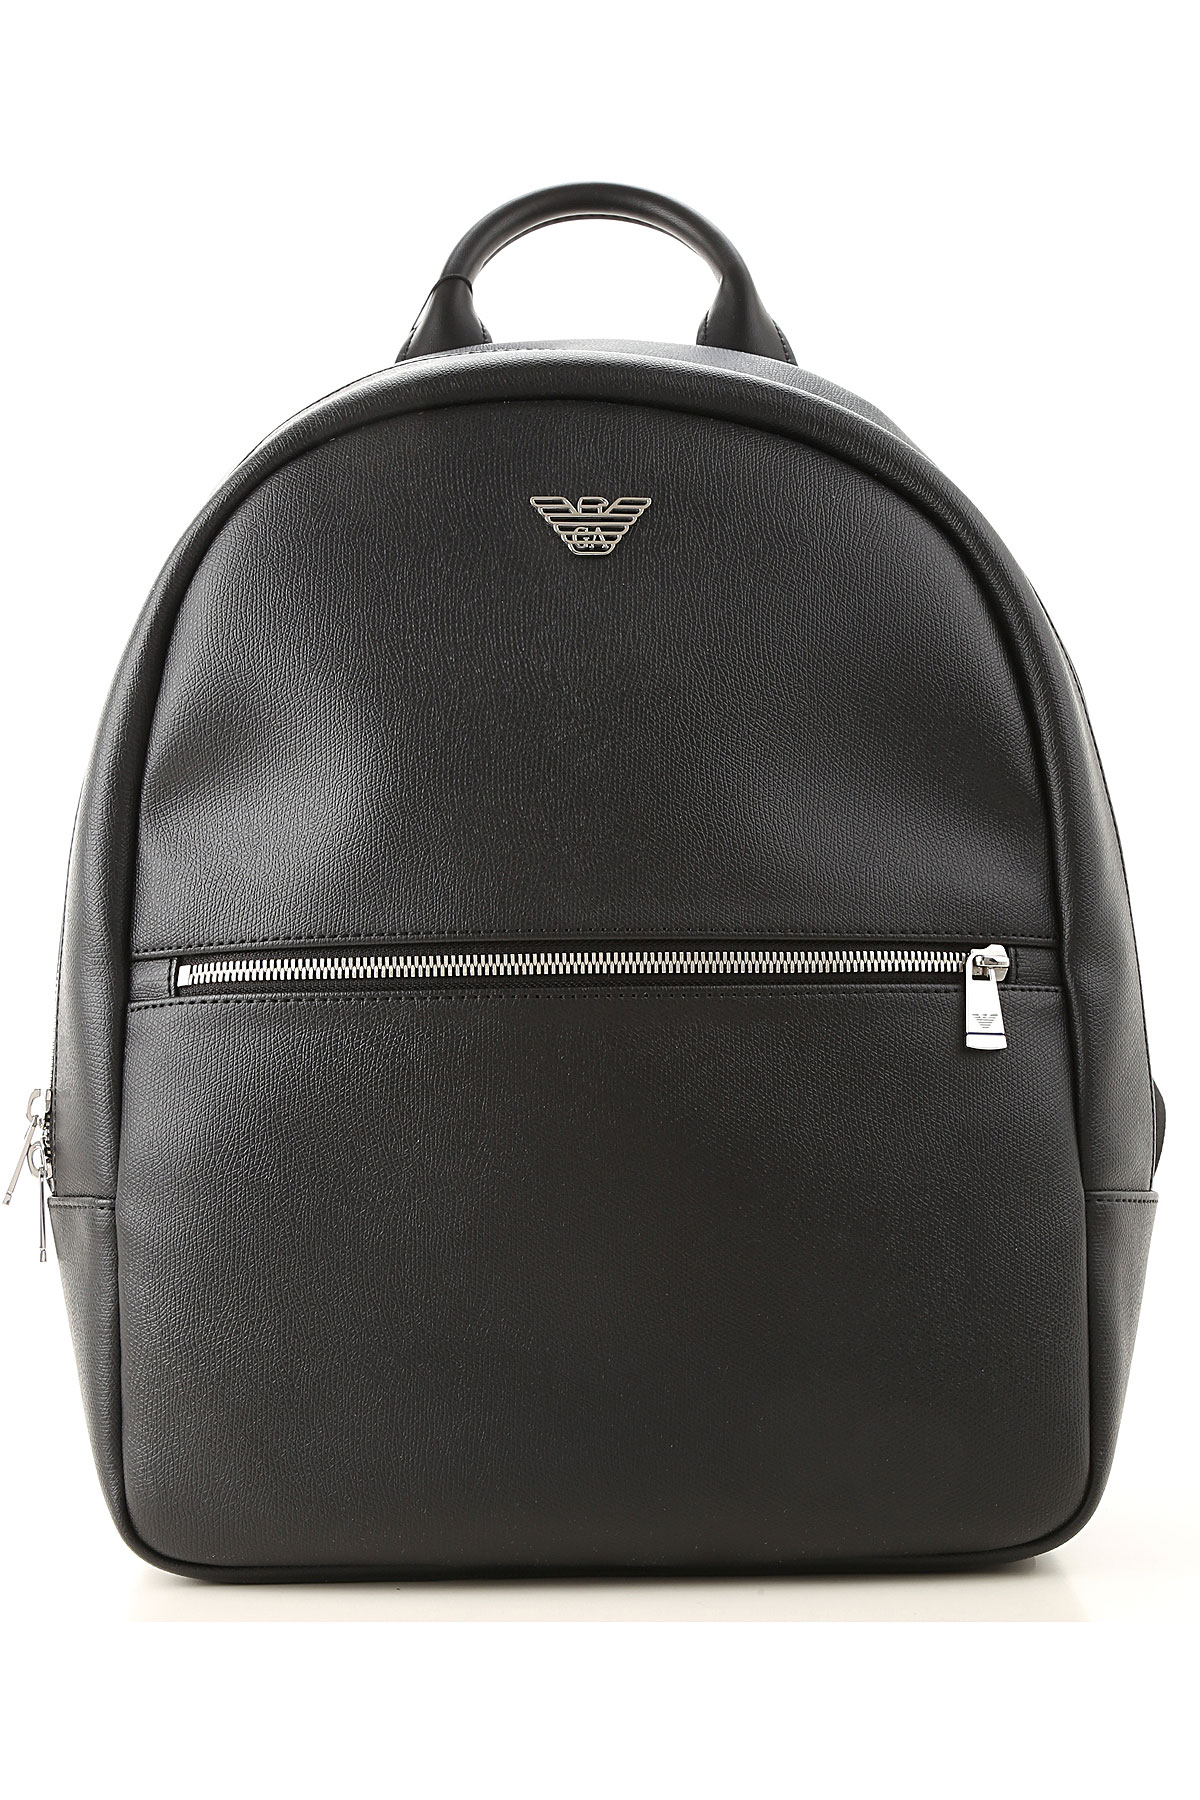 Emporio Armani Backpack for Men On Sale, Black, Leather, 2019, one size